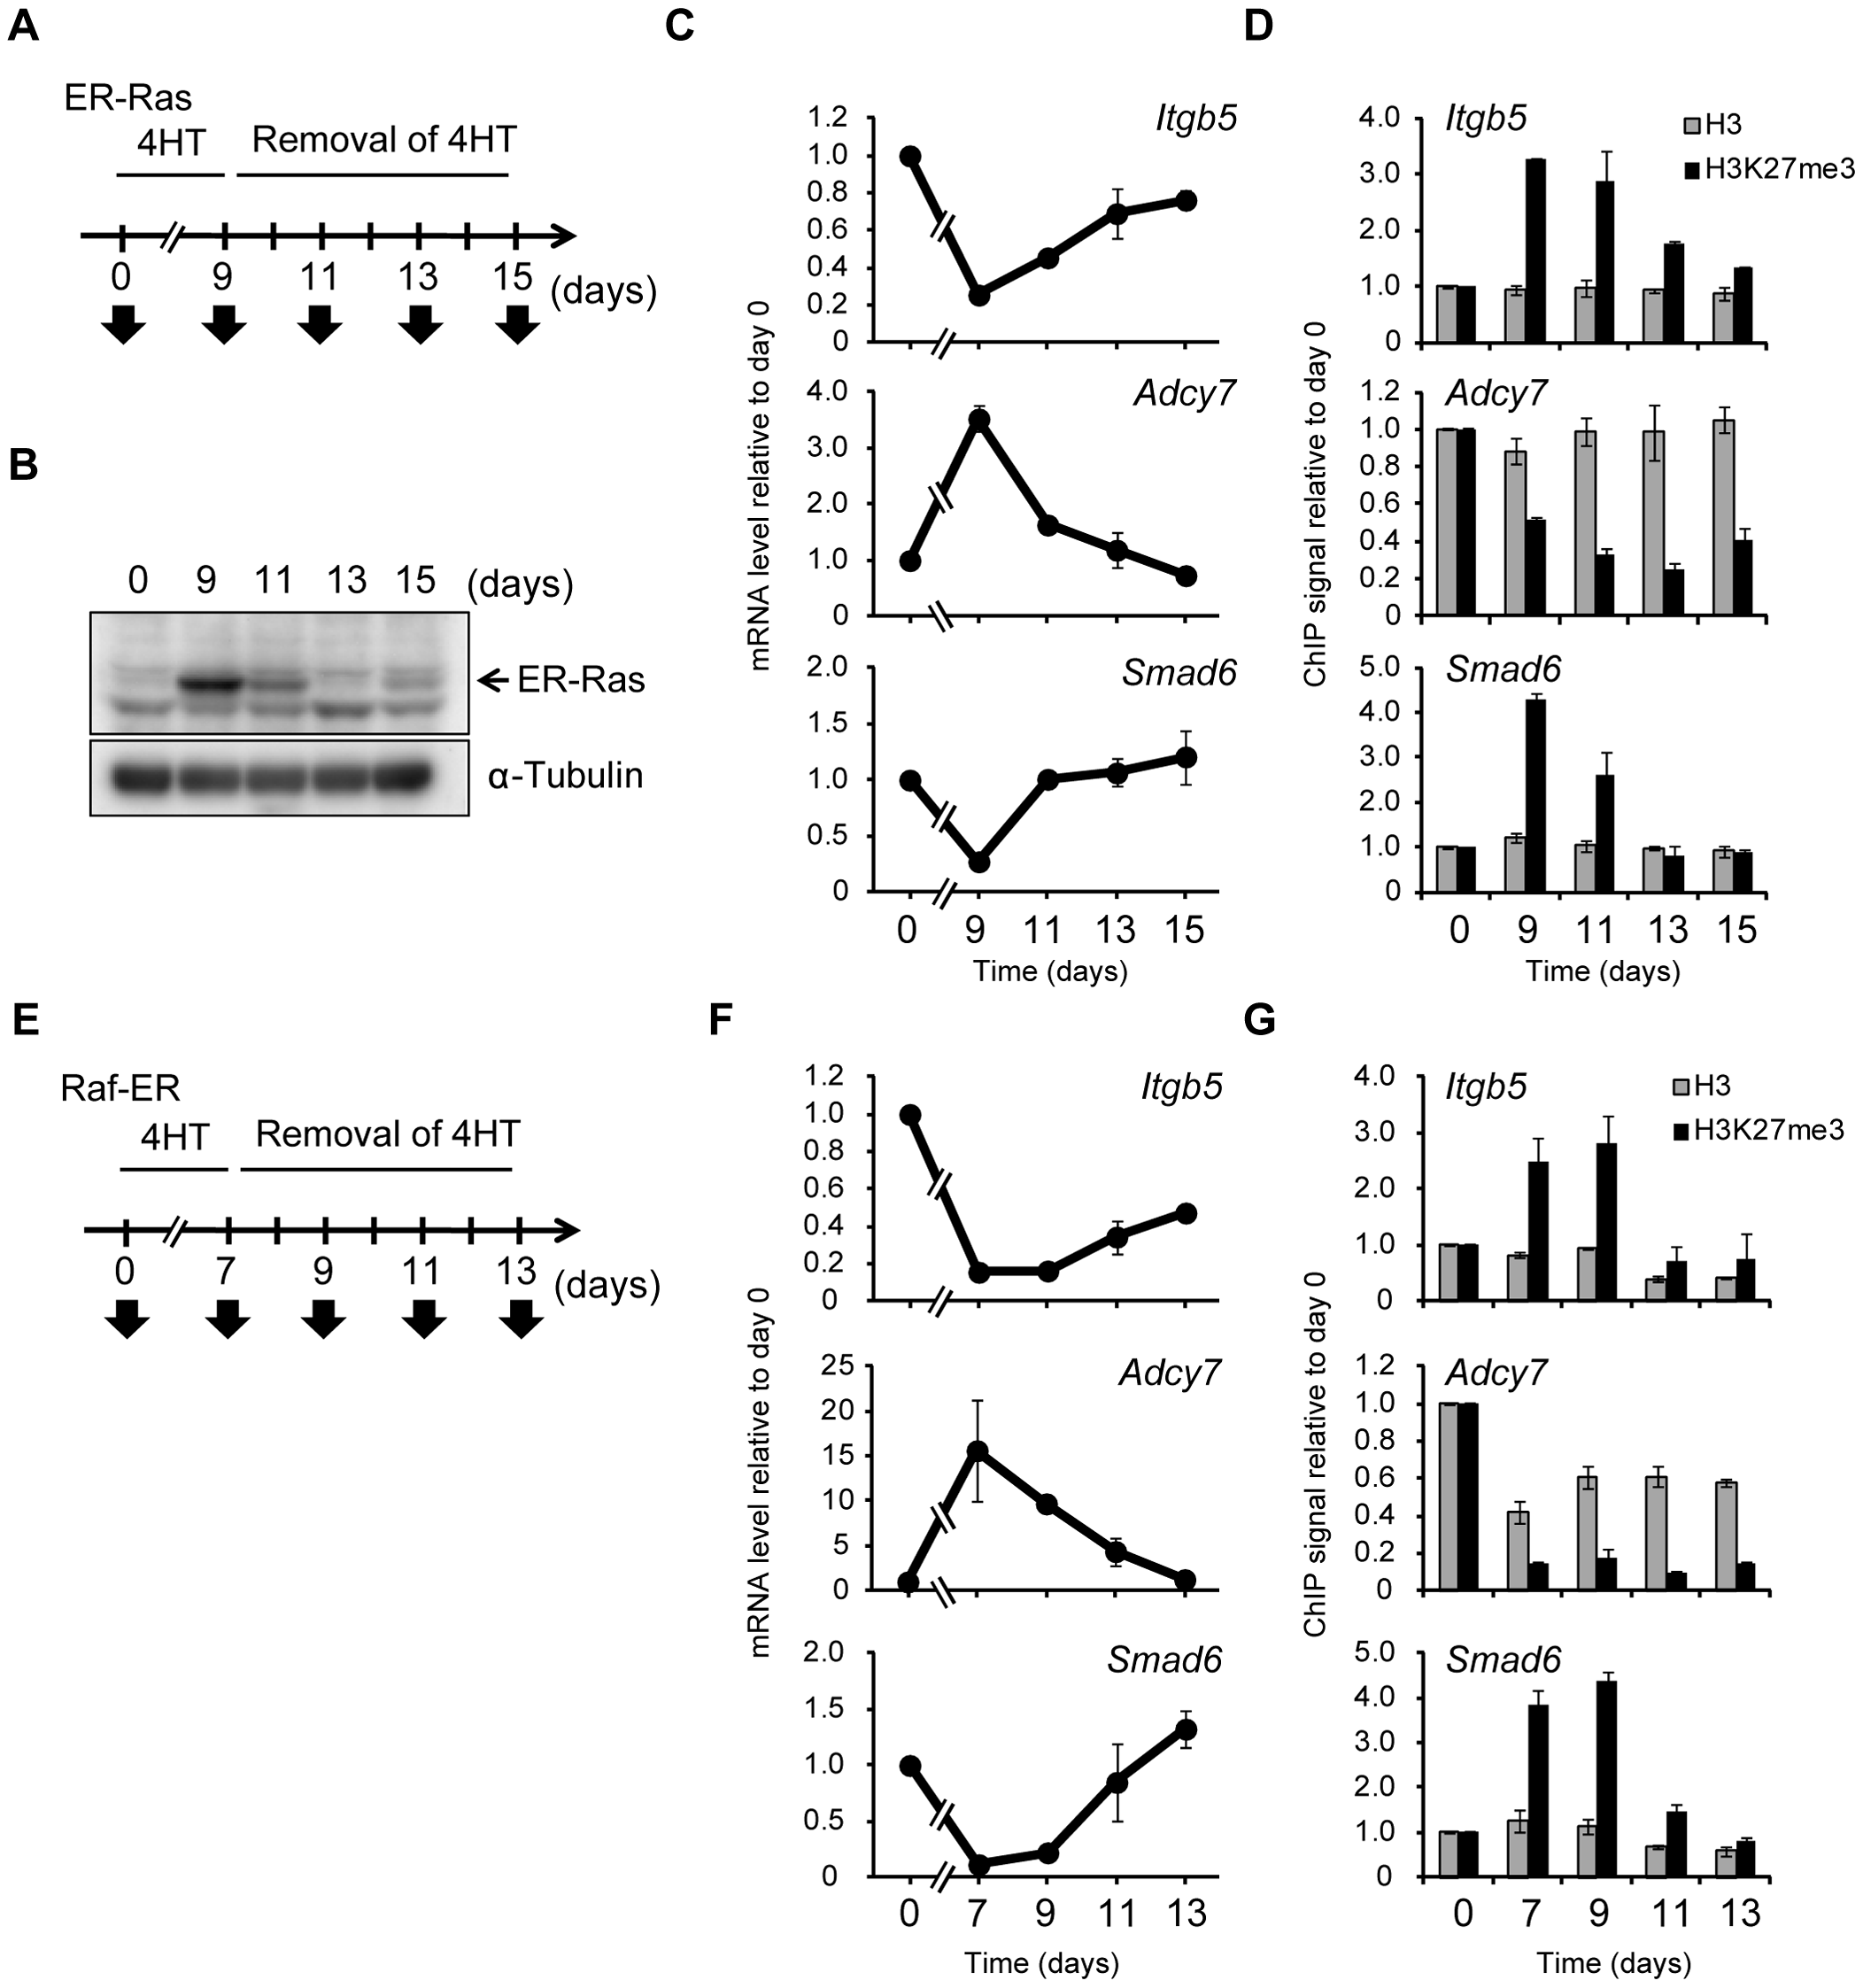 Ras-induced H3K27me3 accumulation and transcriptional changes are reversed by inactivation of Ras signaling.